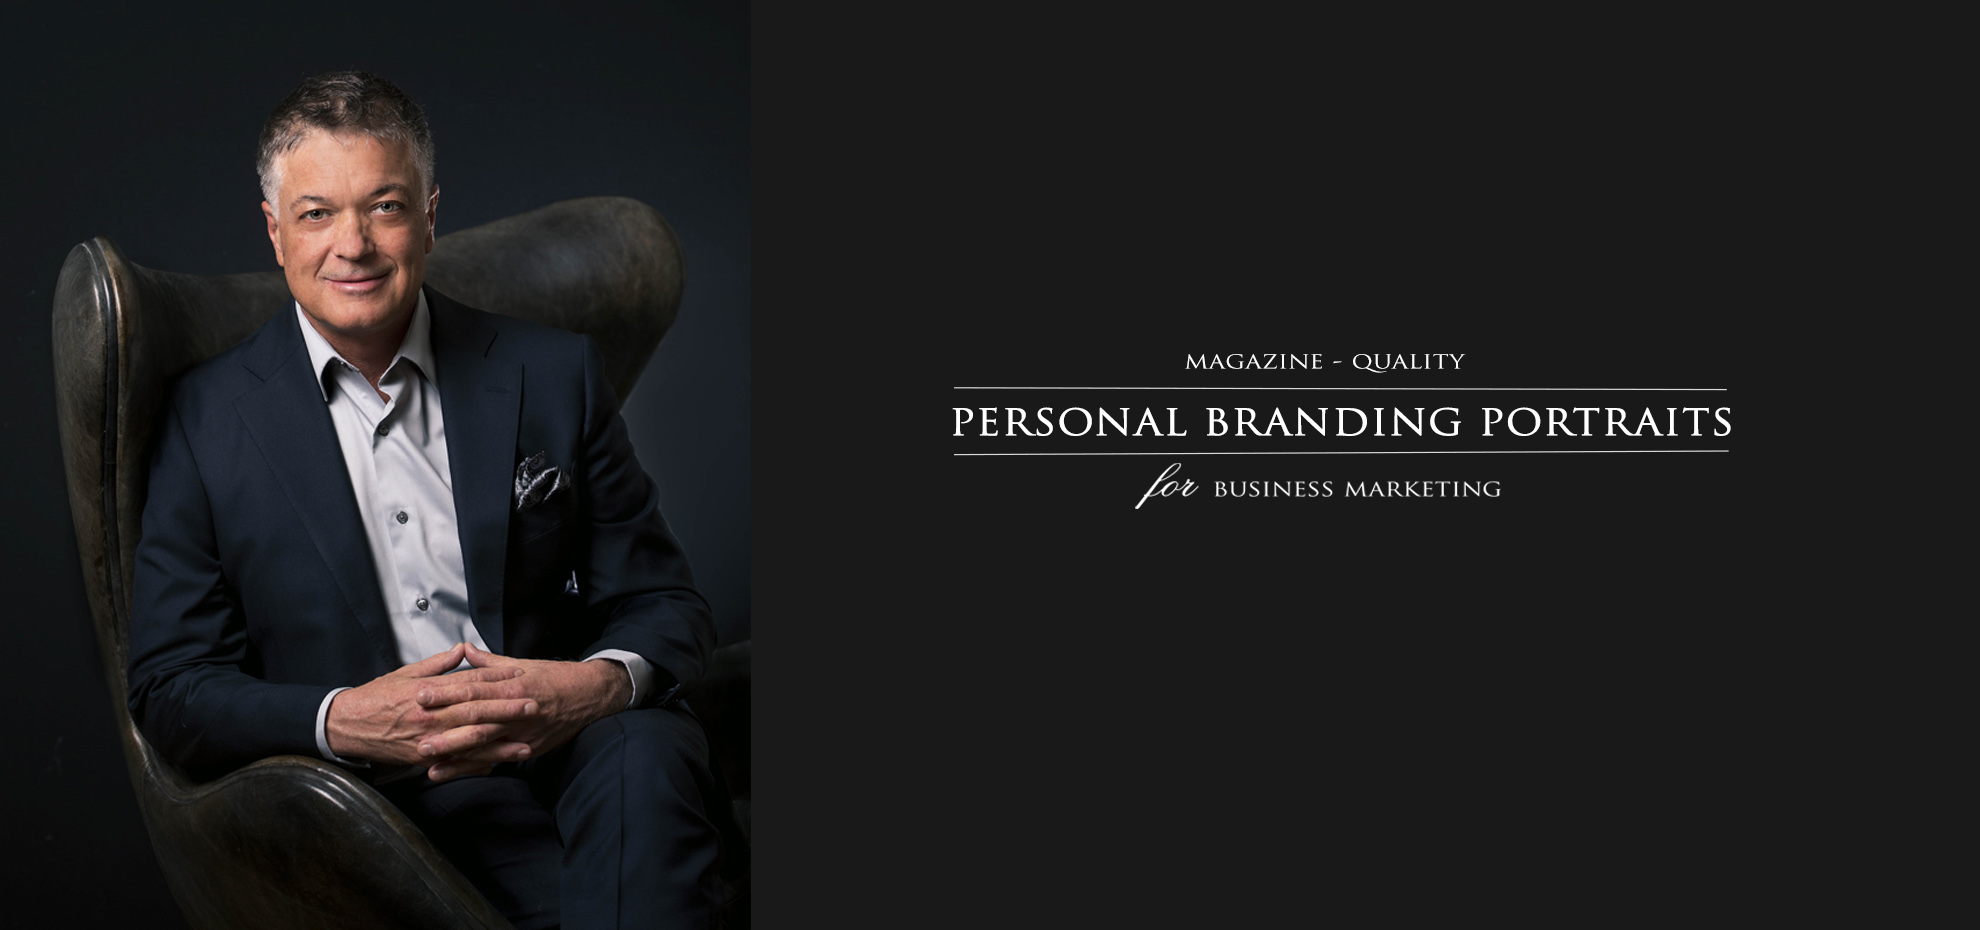 Branding, headshot, executive business portraits, commercial photography by Joy Rahat